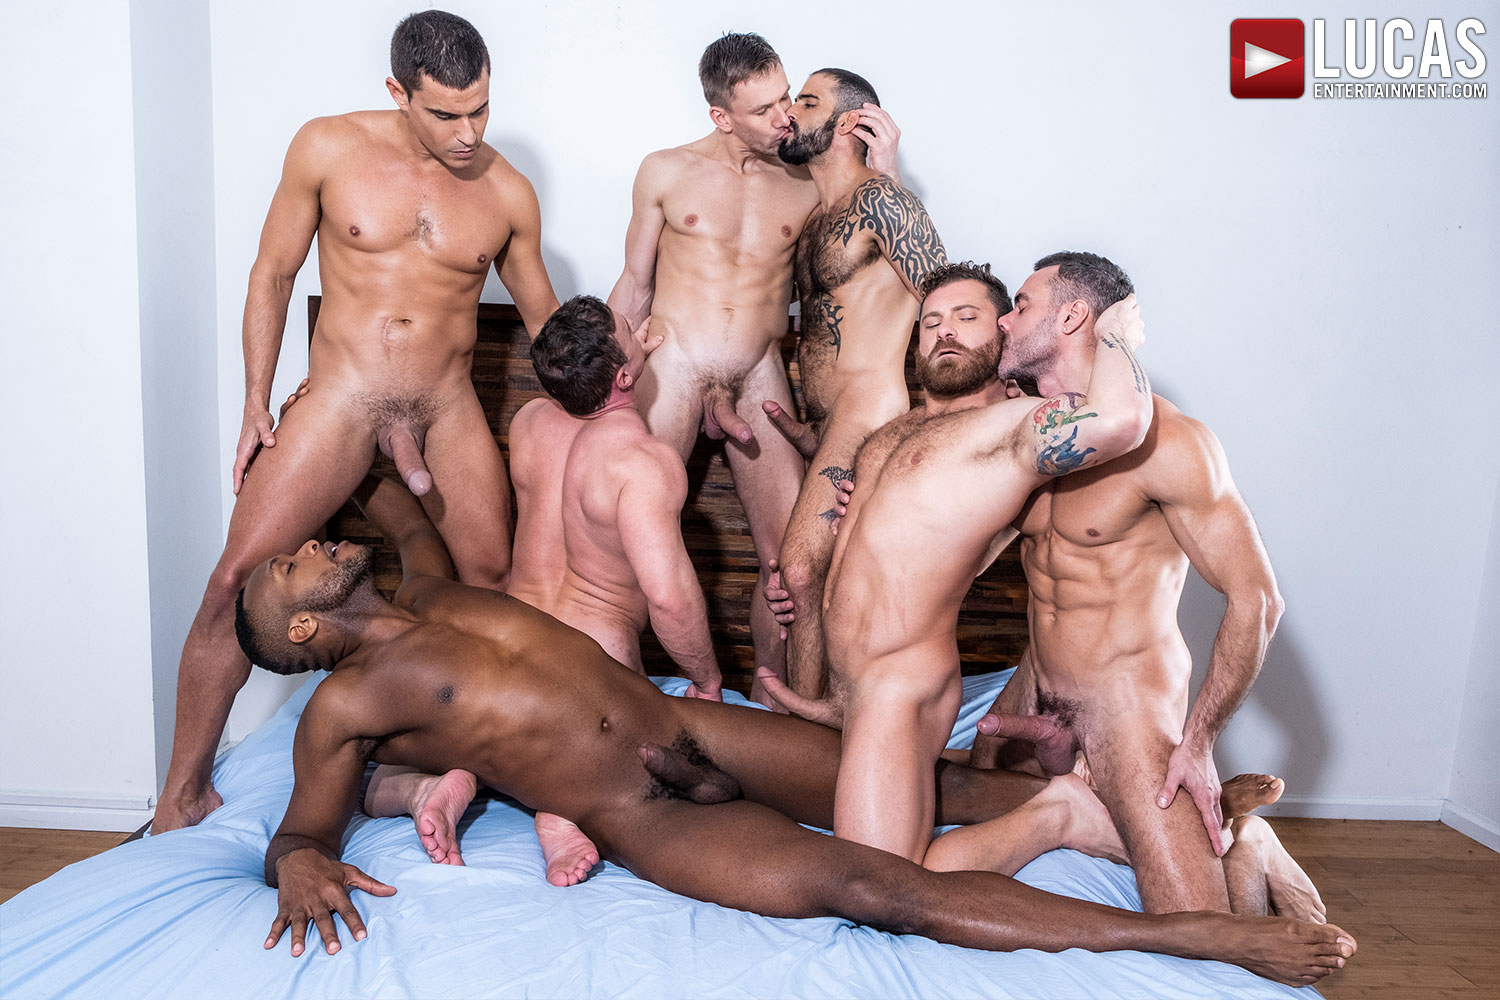 The Lucas Men Gang, Bang, and Pound (Part 02) - Gay Movies - Lucas Entertainment